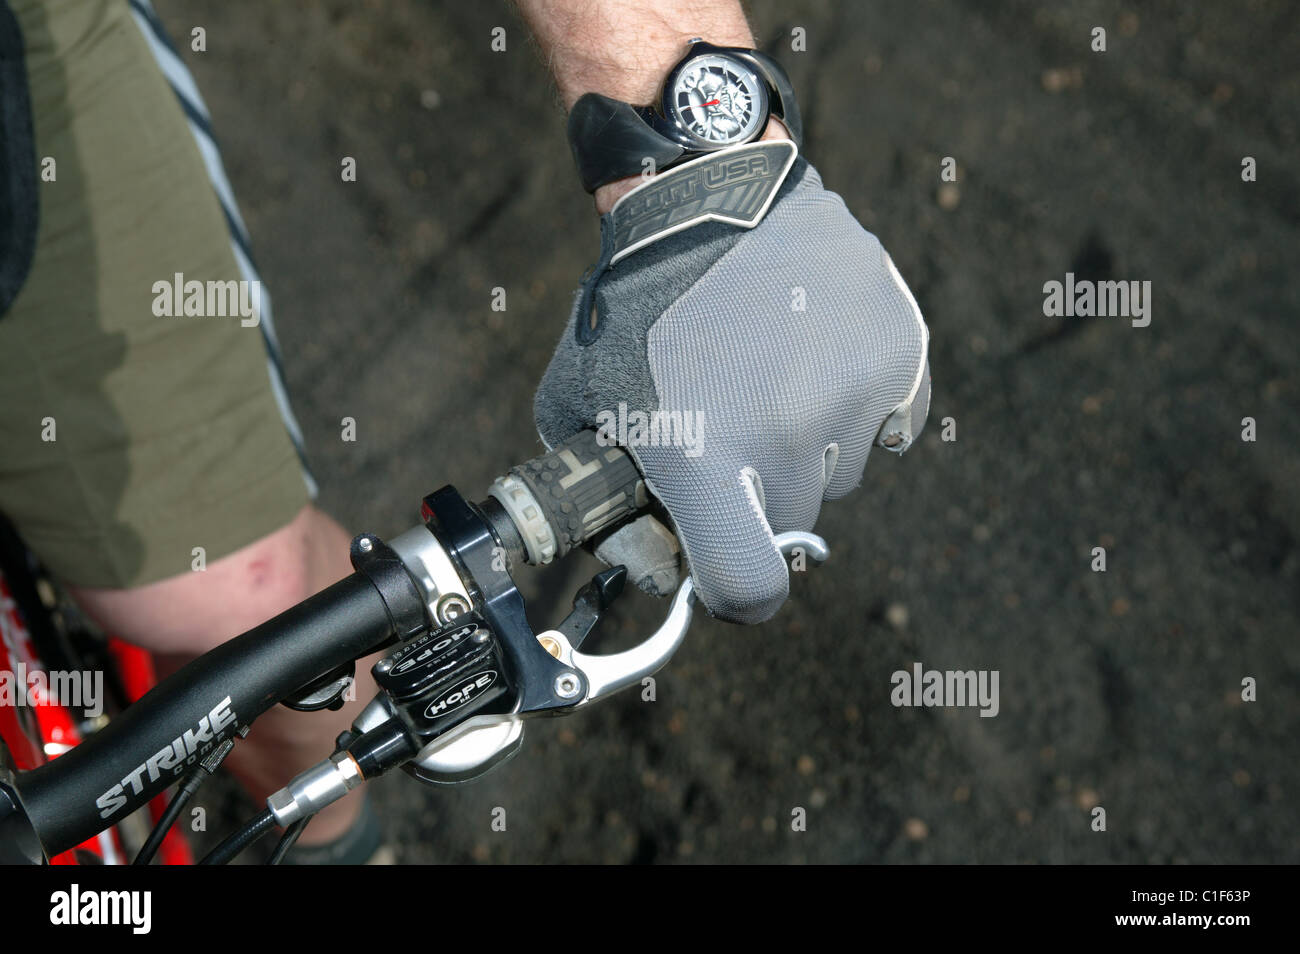 Detail of a Mountain Bikers Glove and Brake Lever, Grip and Handlebars - Stock Image